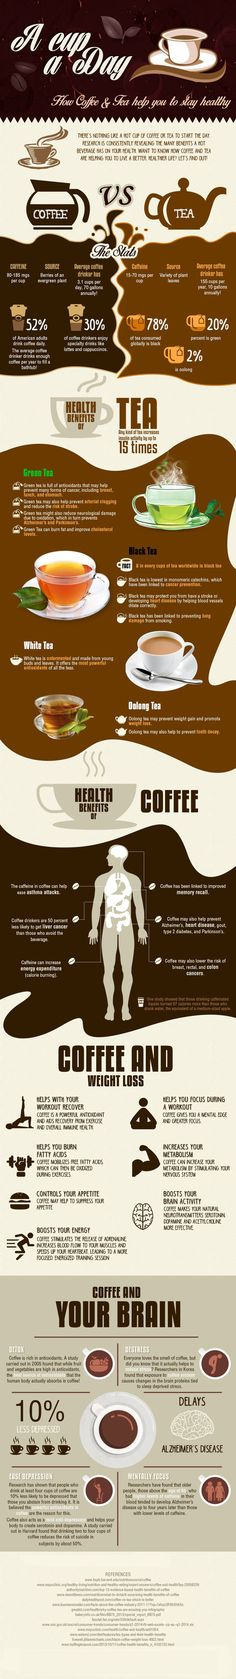 In these cold winter months a cup of hot coffee or tea is perfect to help us warm up. Did you know that both of those options not only warm you up but they help you stay healthy! Read the following infographic on the benefits of drinking coffee and tea.